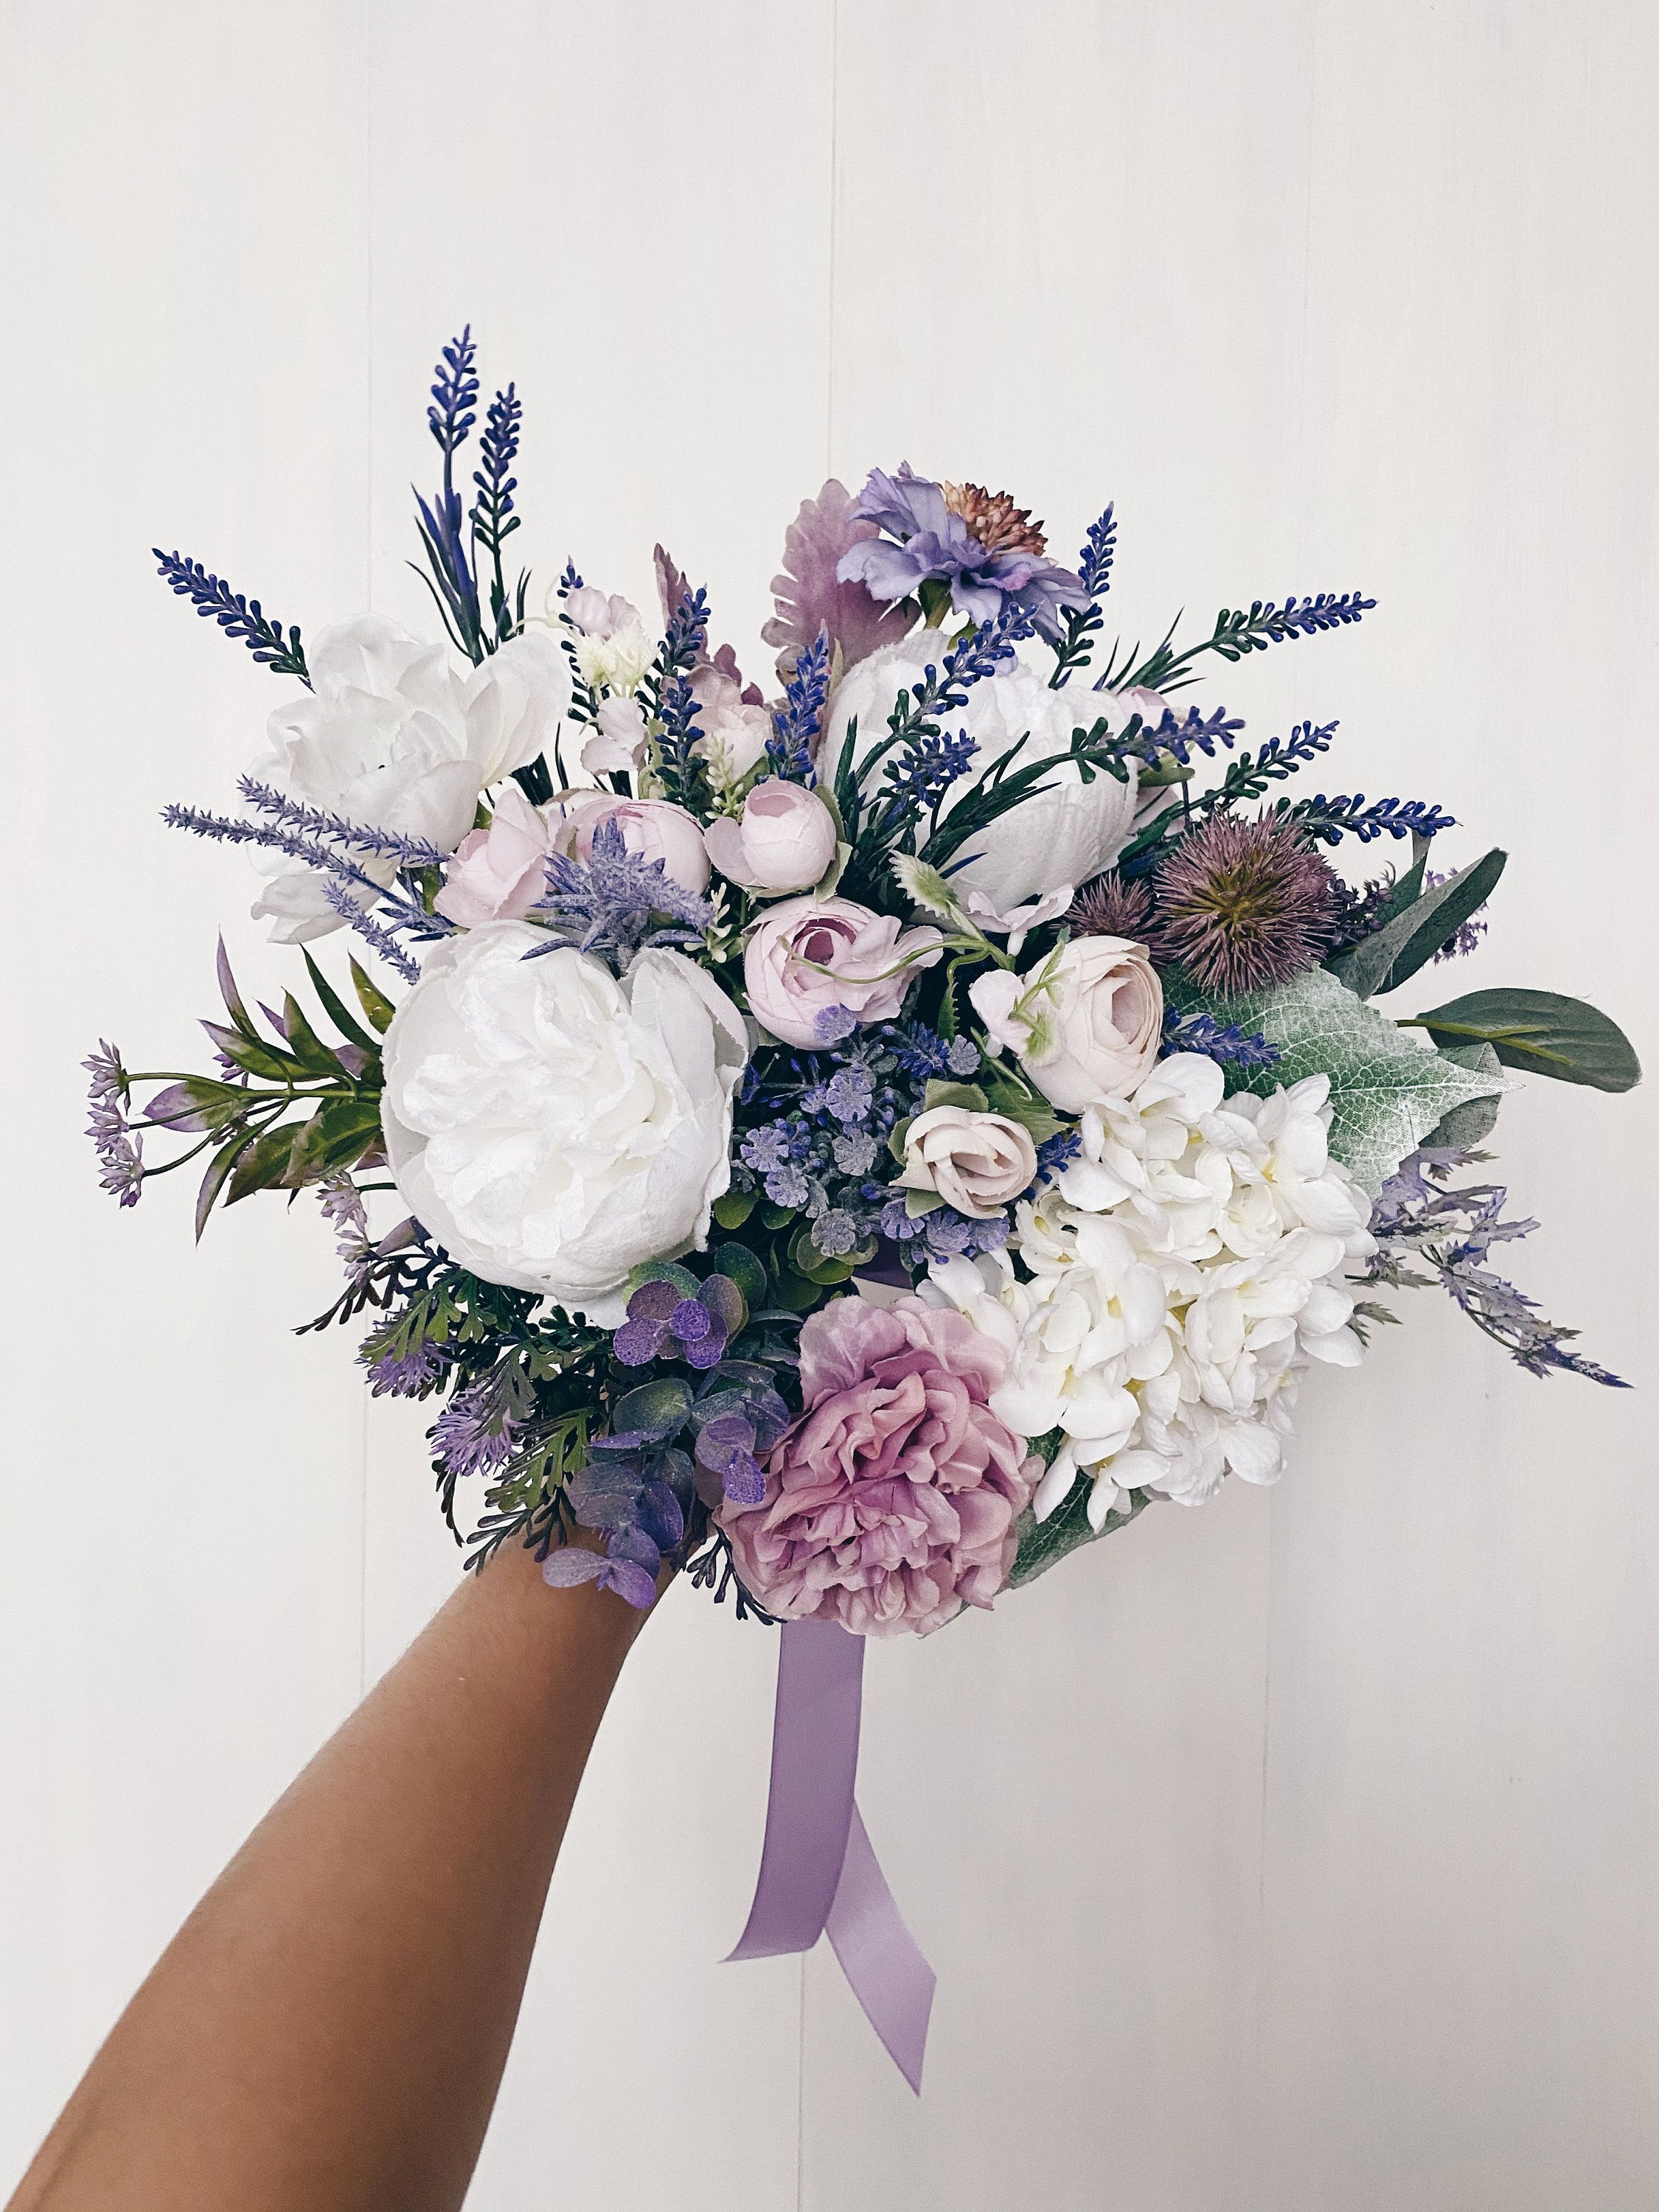 Wedding Bouquet Bridal Bouquet Lavender Lilac Bridesmaids Etsy In 2020 Purple Wedding Bouquets Lavender Wedding Bouquet Lavender Bridal Bouquet